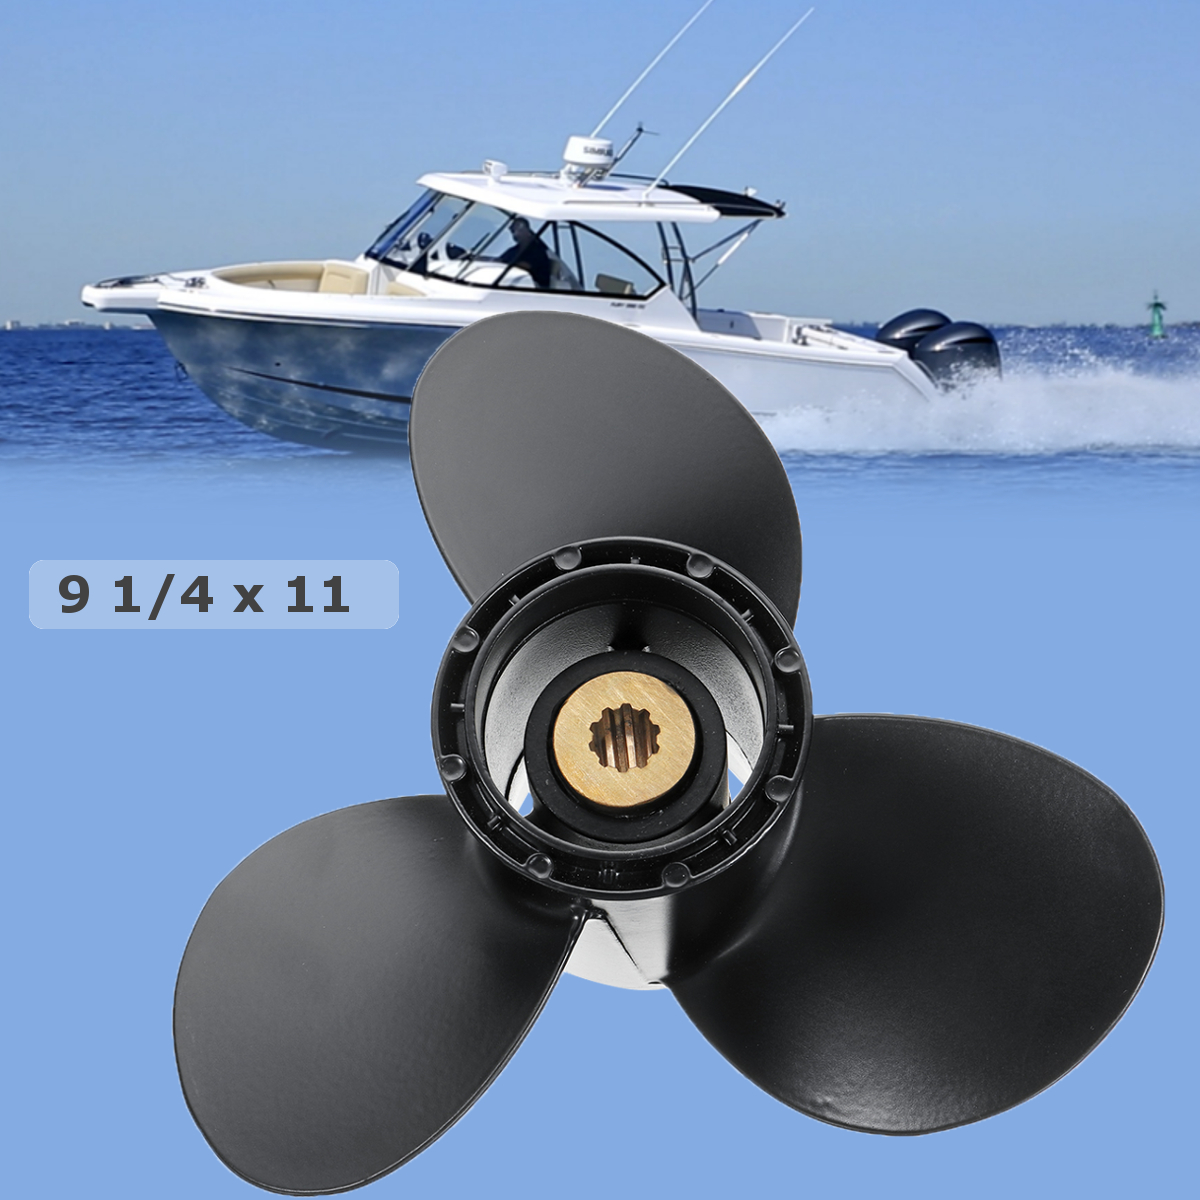 Audew 58100-93743-019 9 1/4 x 11 Boat Outboard Propeller for Suzuki 9.9-15HP Aluminium Alloy 3 Blades 10 Spline Tooths Black new outboard propeller 58100 88l31 019 size 11 5 8 x 12 12p df40a 50a 6 for suzuki marine outboard engine motor